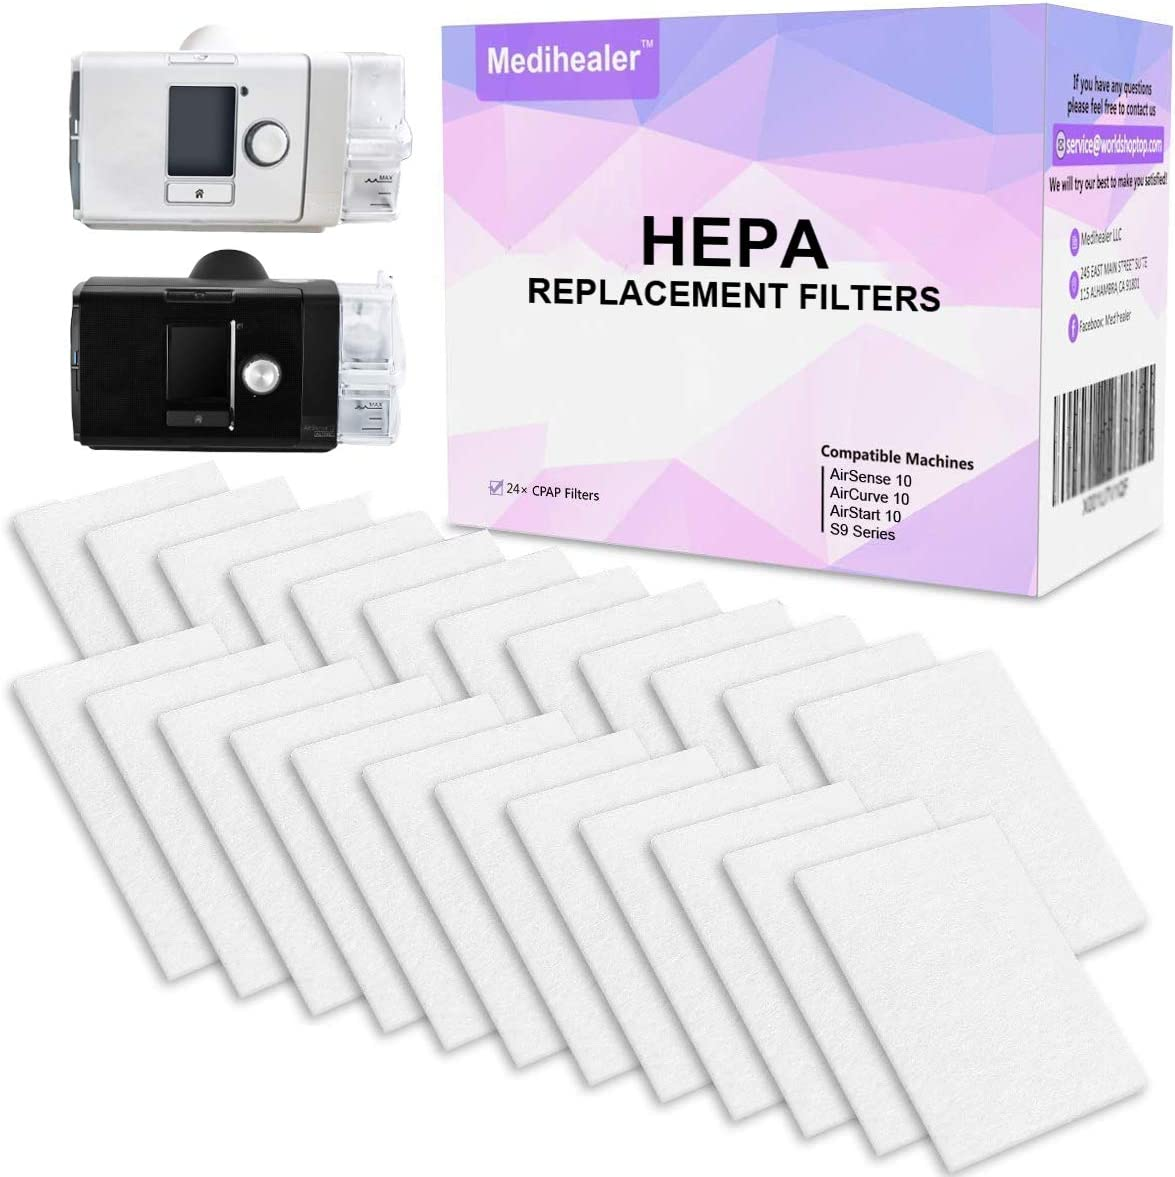 Medihealer CPAP HEPA Filters (ONE Year Supply) - Premium Universal Ultrafine Filters - Supplies for AirSense 10 - AirCurve 10 - S9 - AirStart Series Machines-Replacement Filters Supplies 61bwV1TlElL